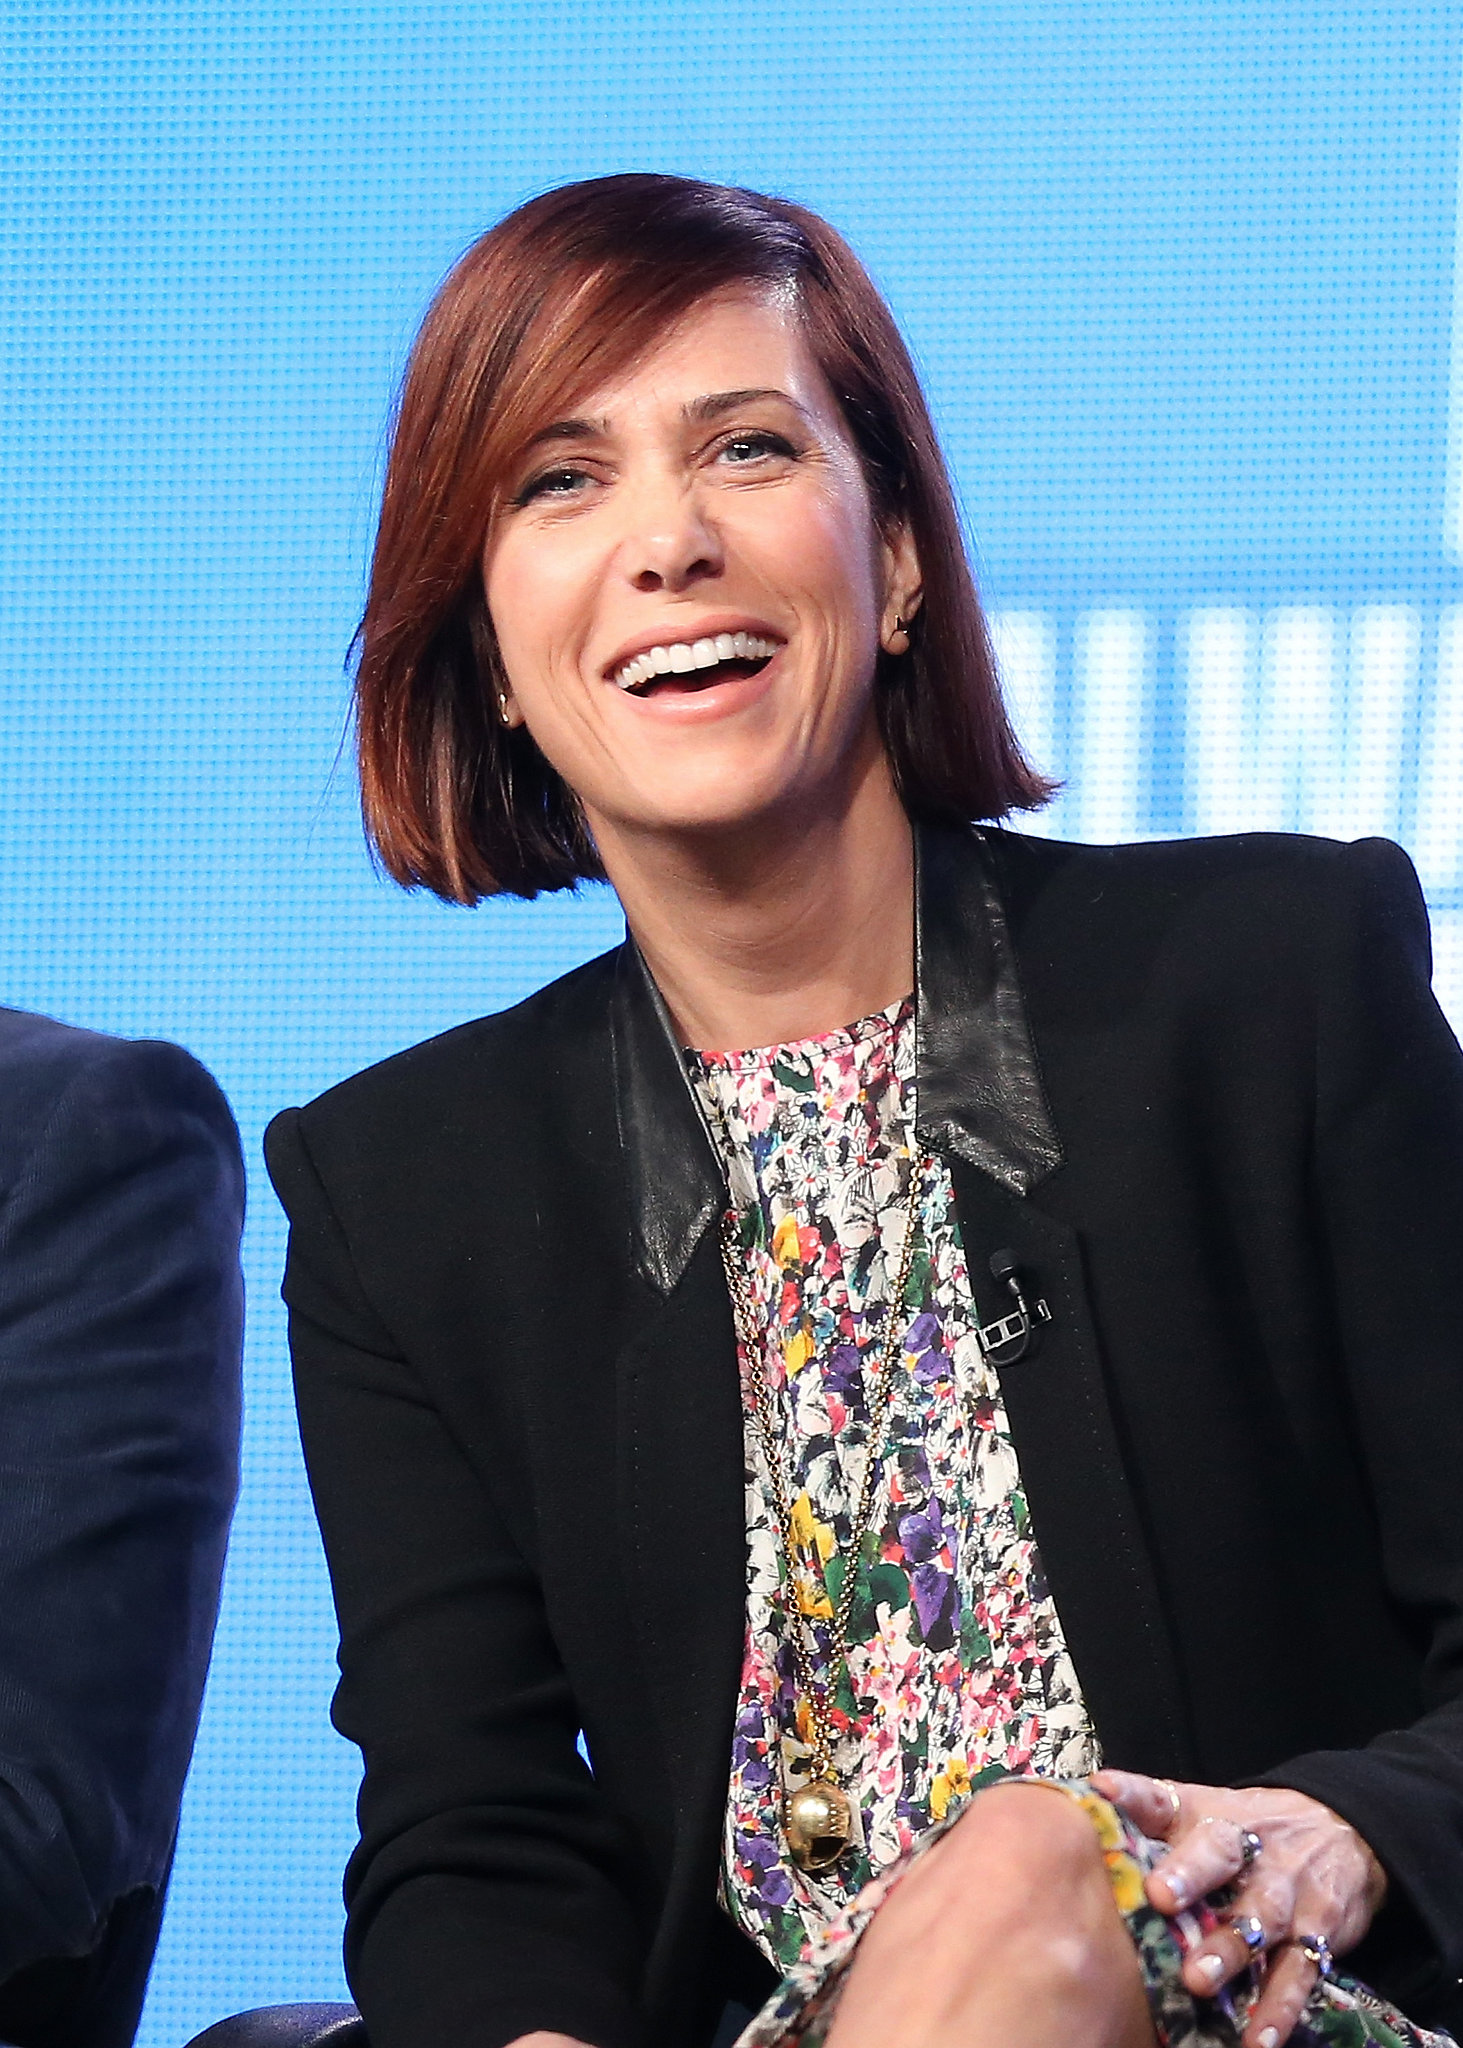 Kristen Wiig was all smiles on stage.